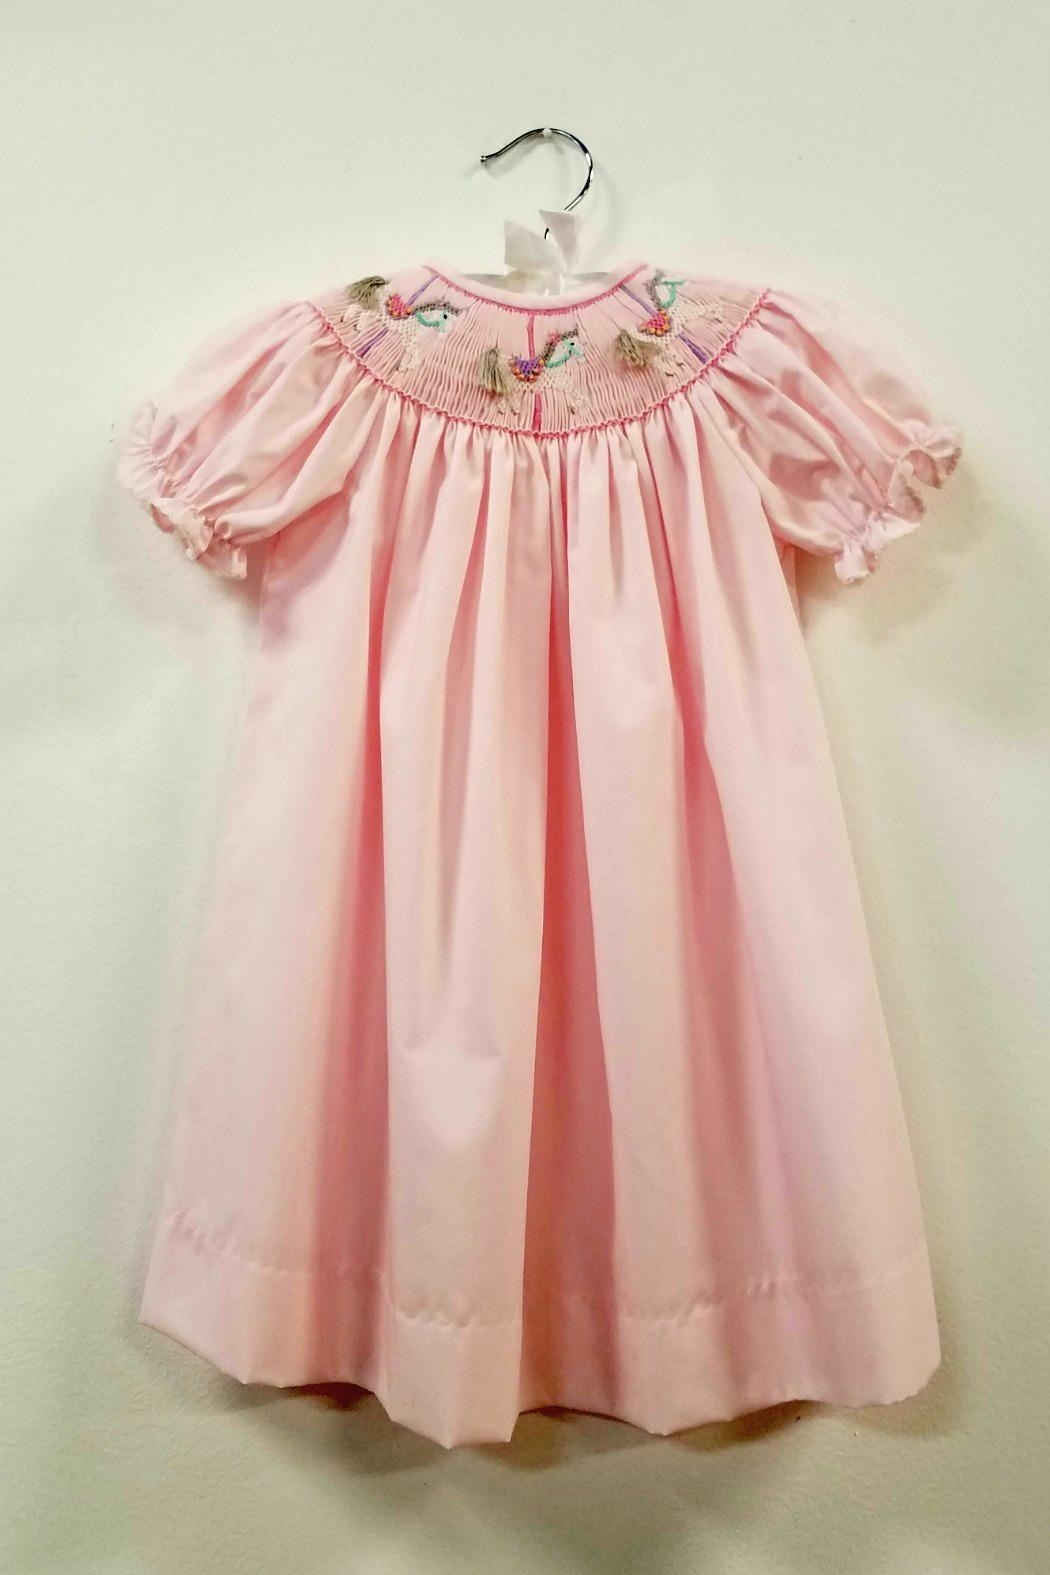 Le Za Me Carousel Unicorn Smocked Dress From South